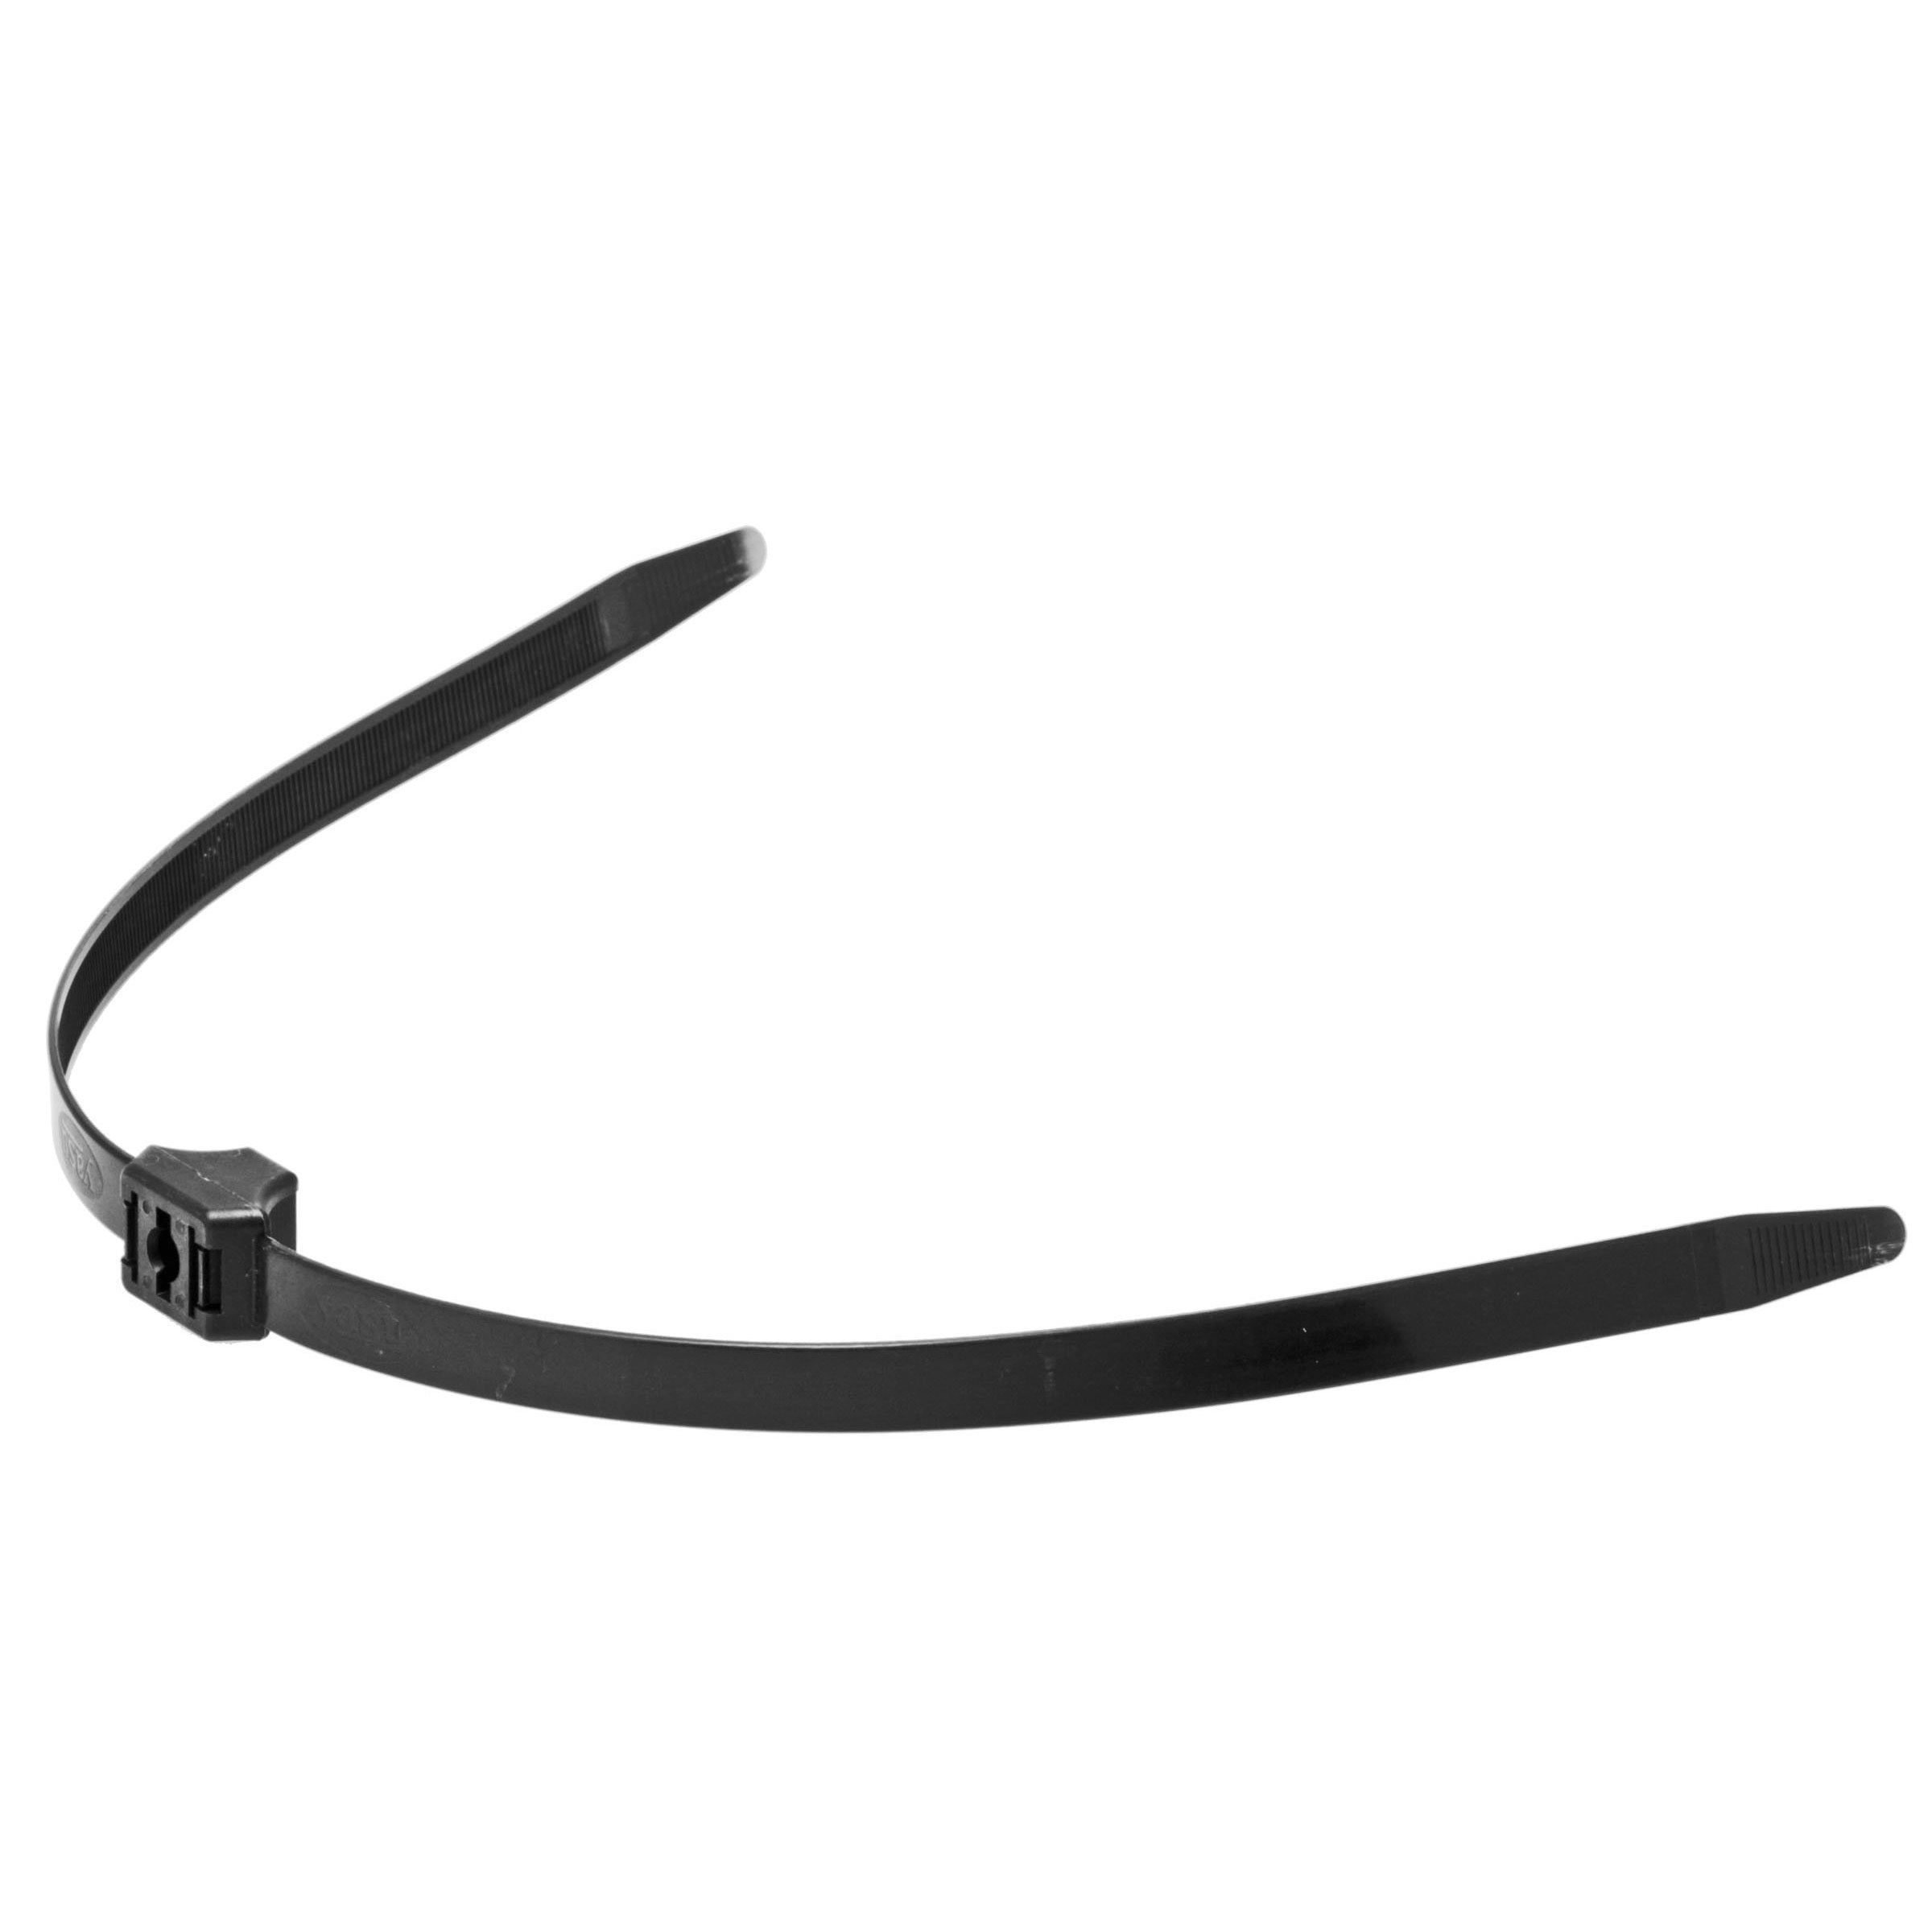 NEW Black Zip Tie Police Cuffs